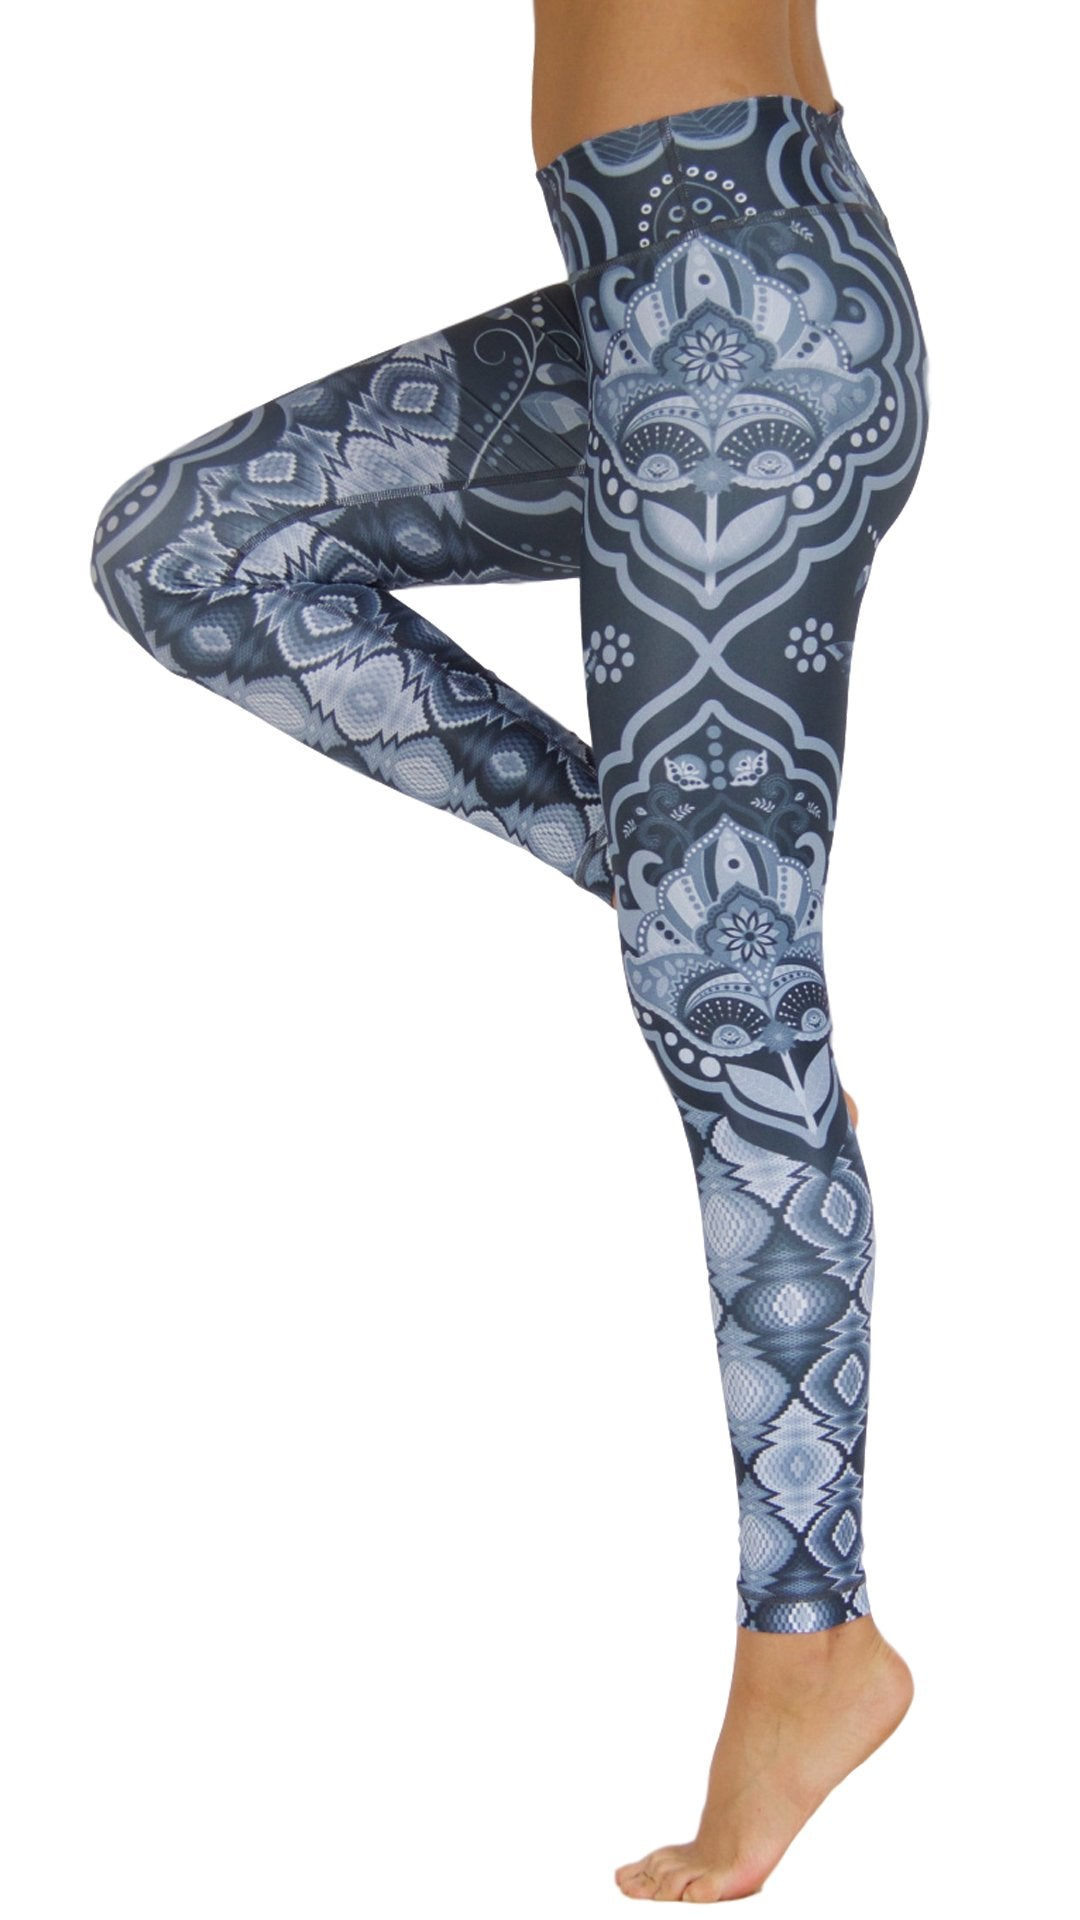 Yin and Yang Black by Niyama - High Quality, Yoga Legging for Movement Artists.